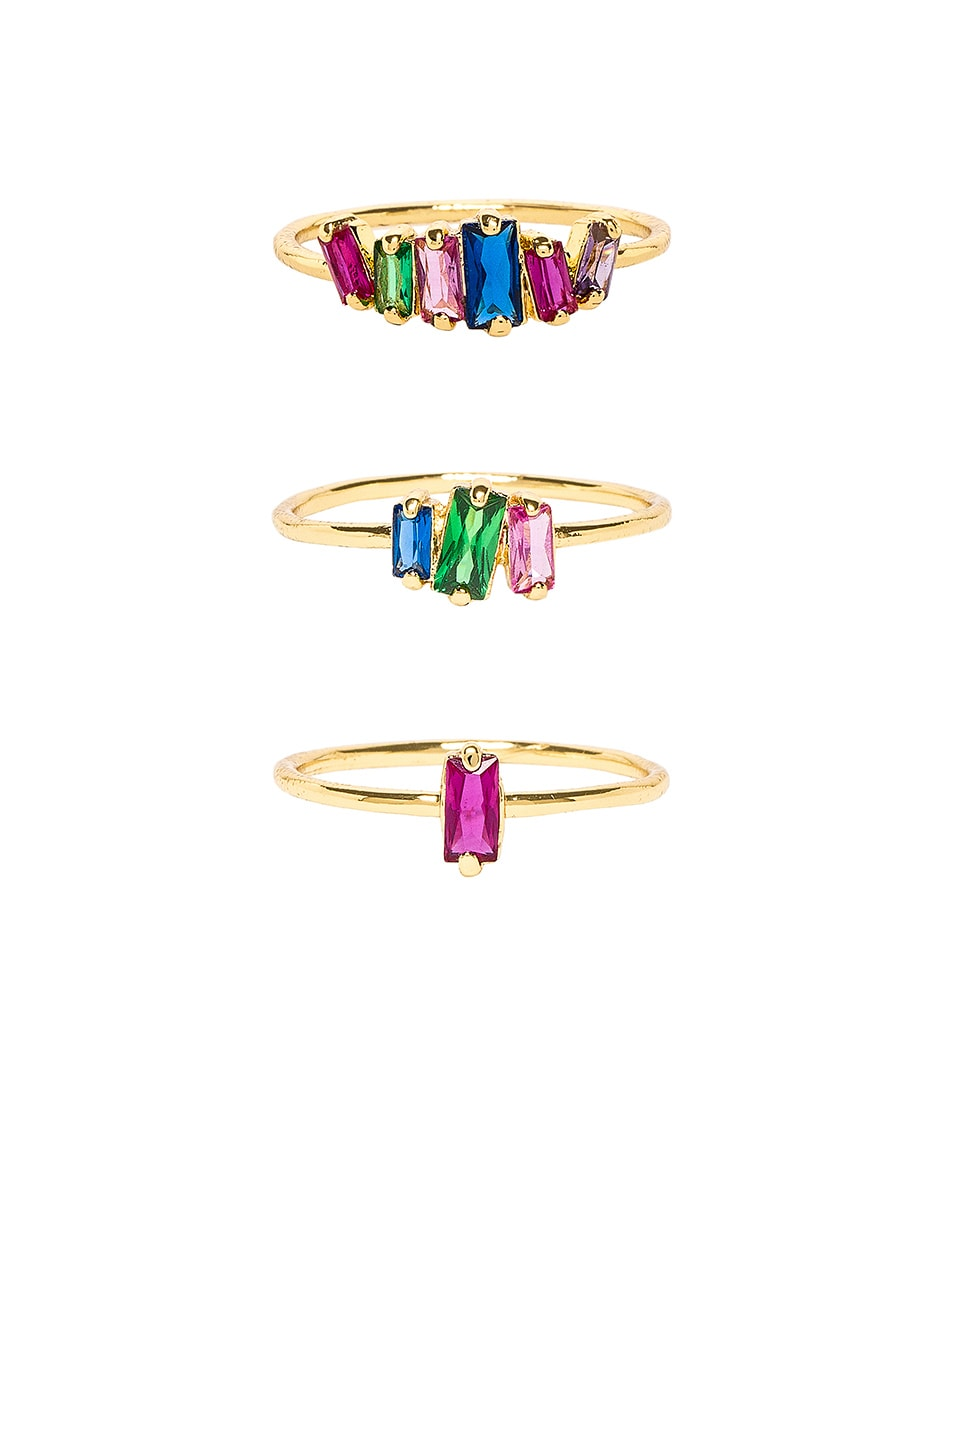 gorjana Amara Ring Set in Jewel Tone Mix CZ & Gold